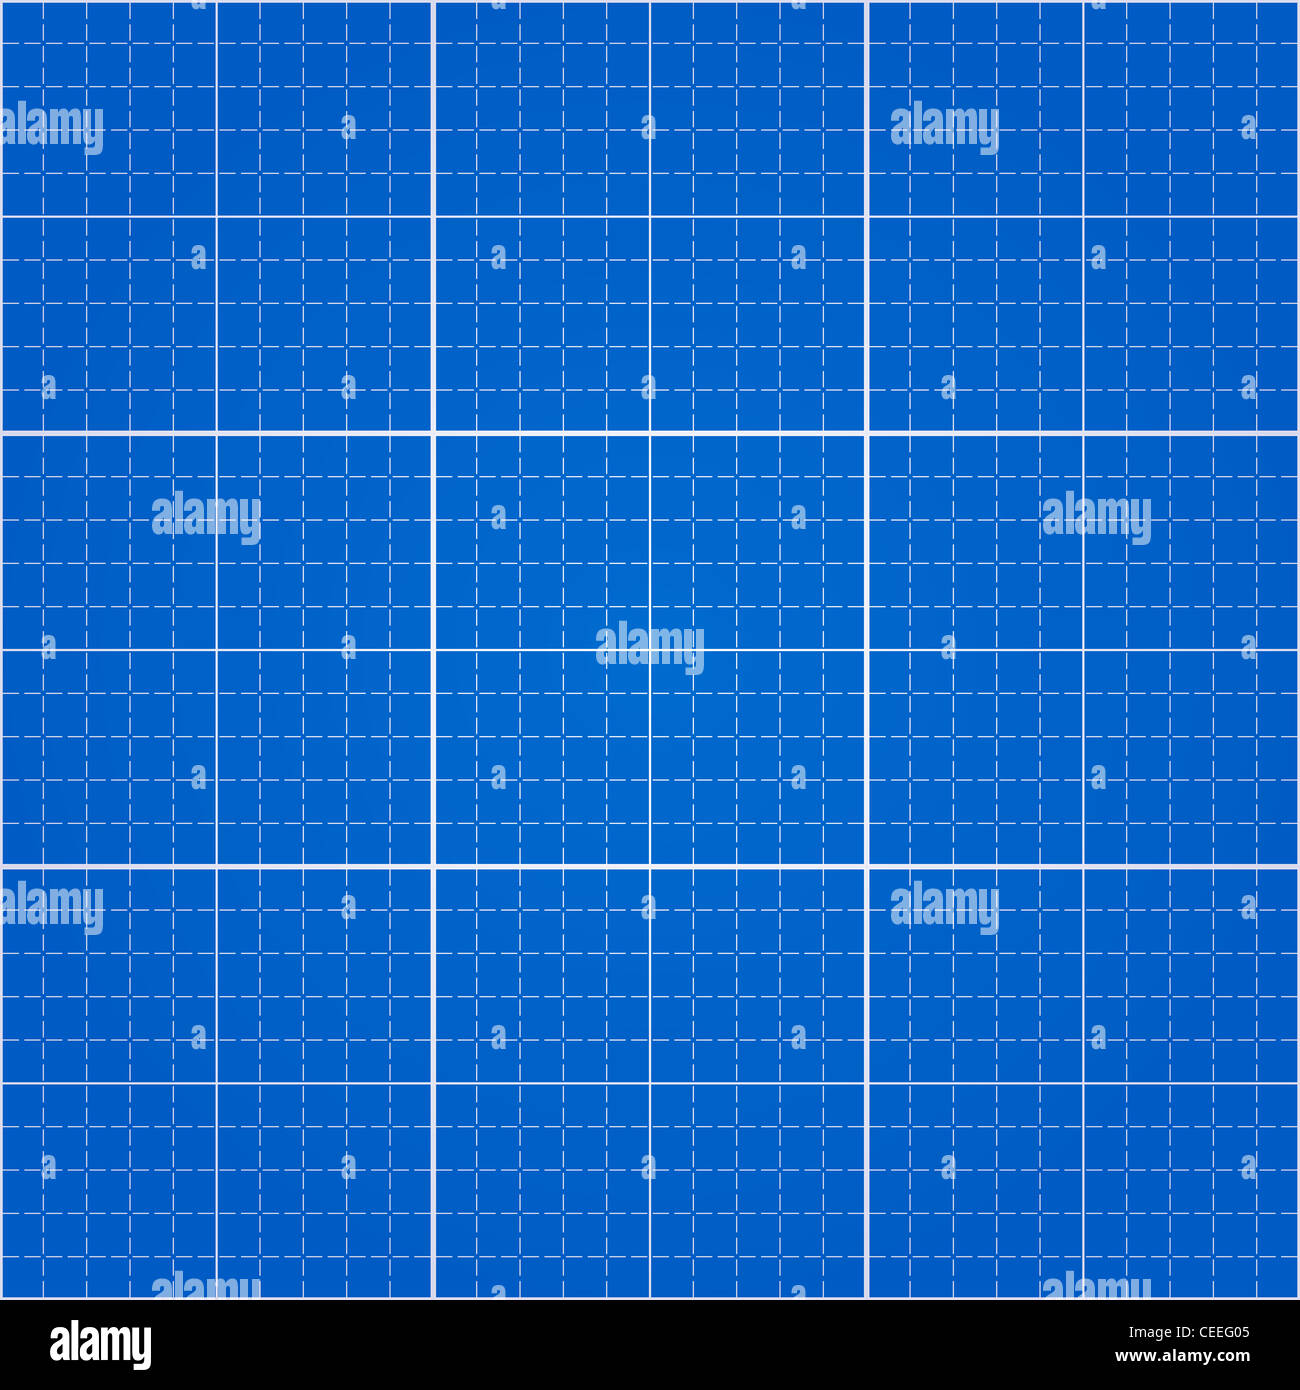 Seamless blueprint background engineering drawing blue paper stock seamless blueprint background engineering drawing blue paper background with pattern swatch in eps file malvernweather